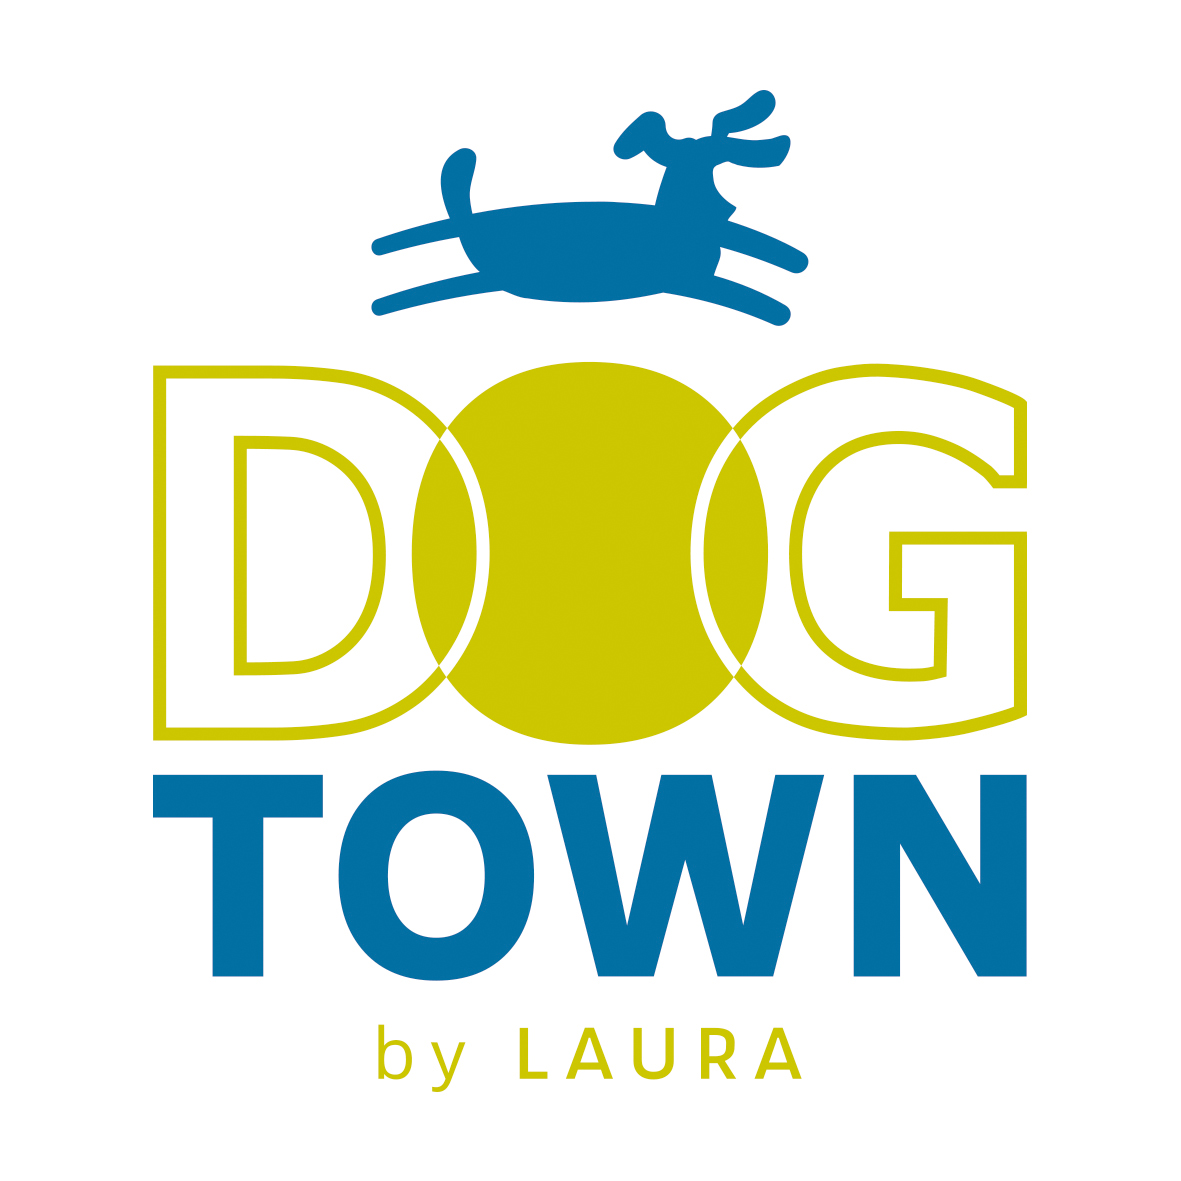 Dog Town by Laura